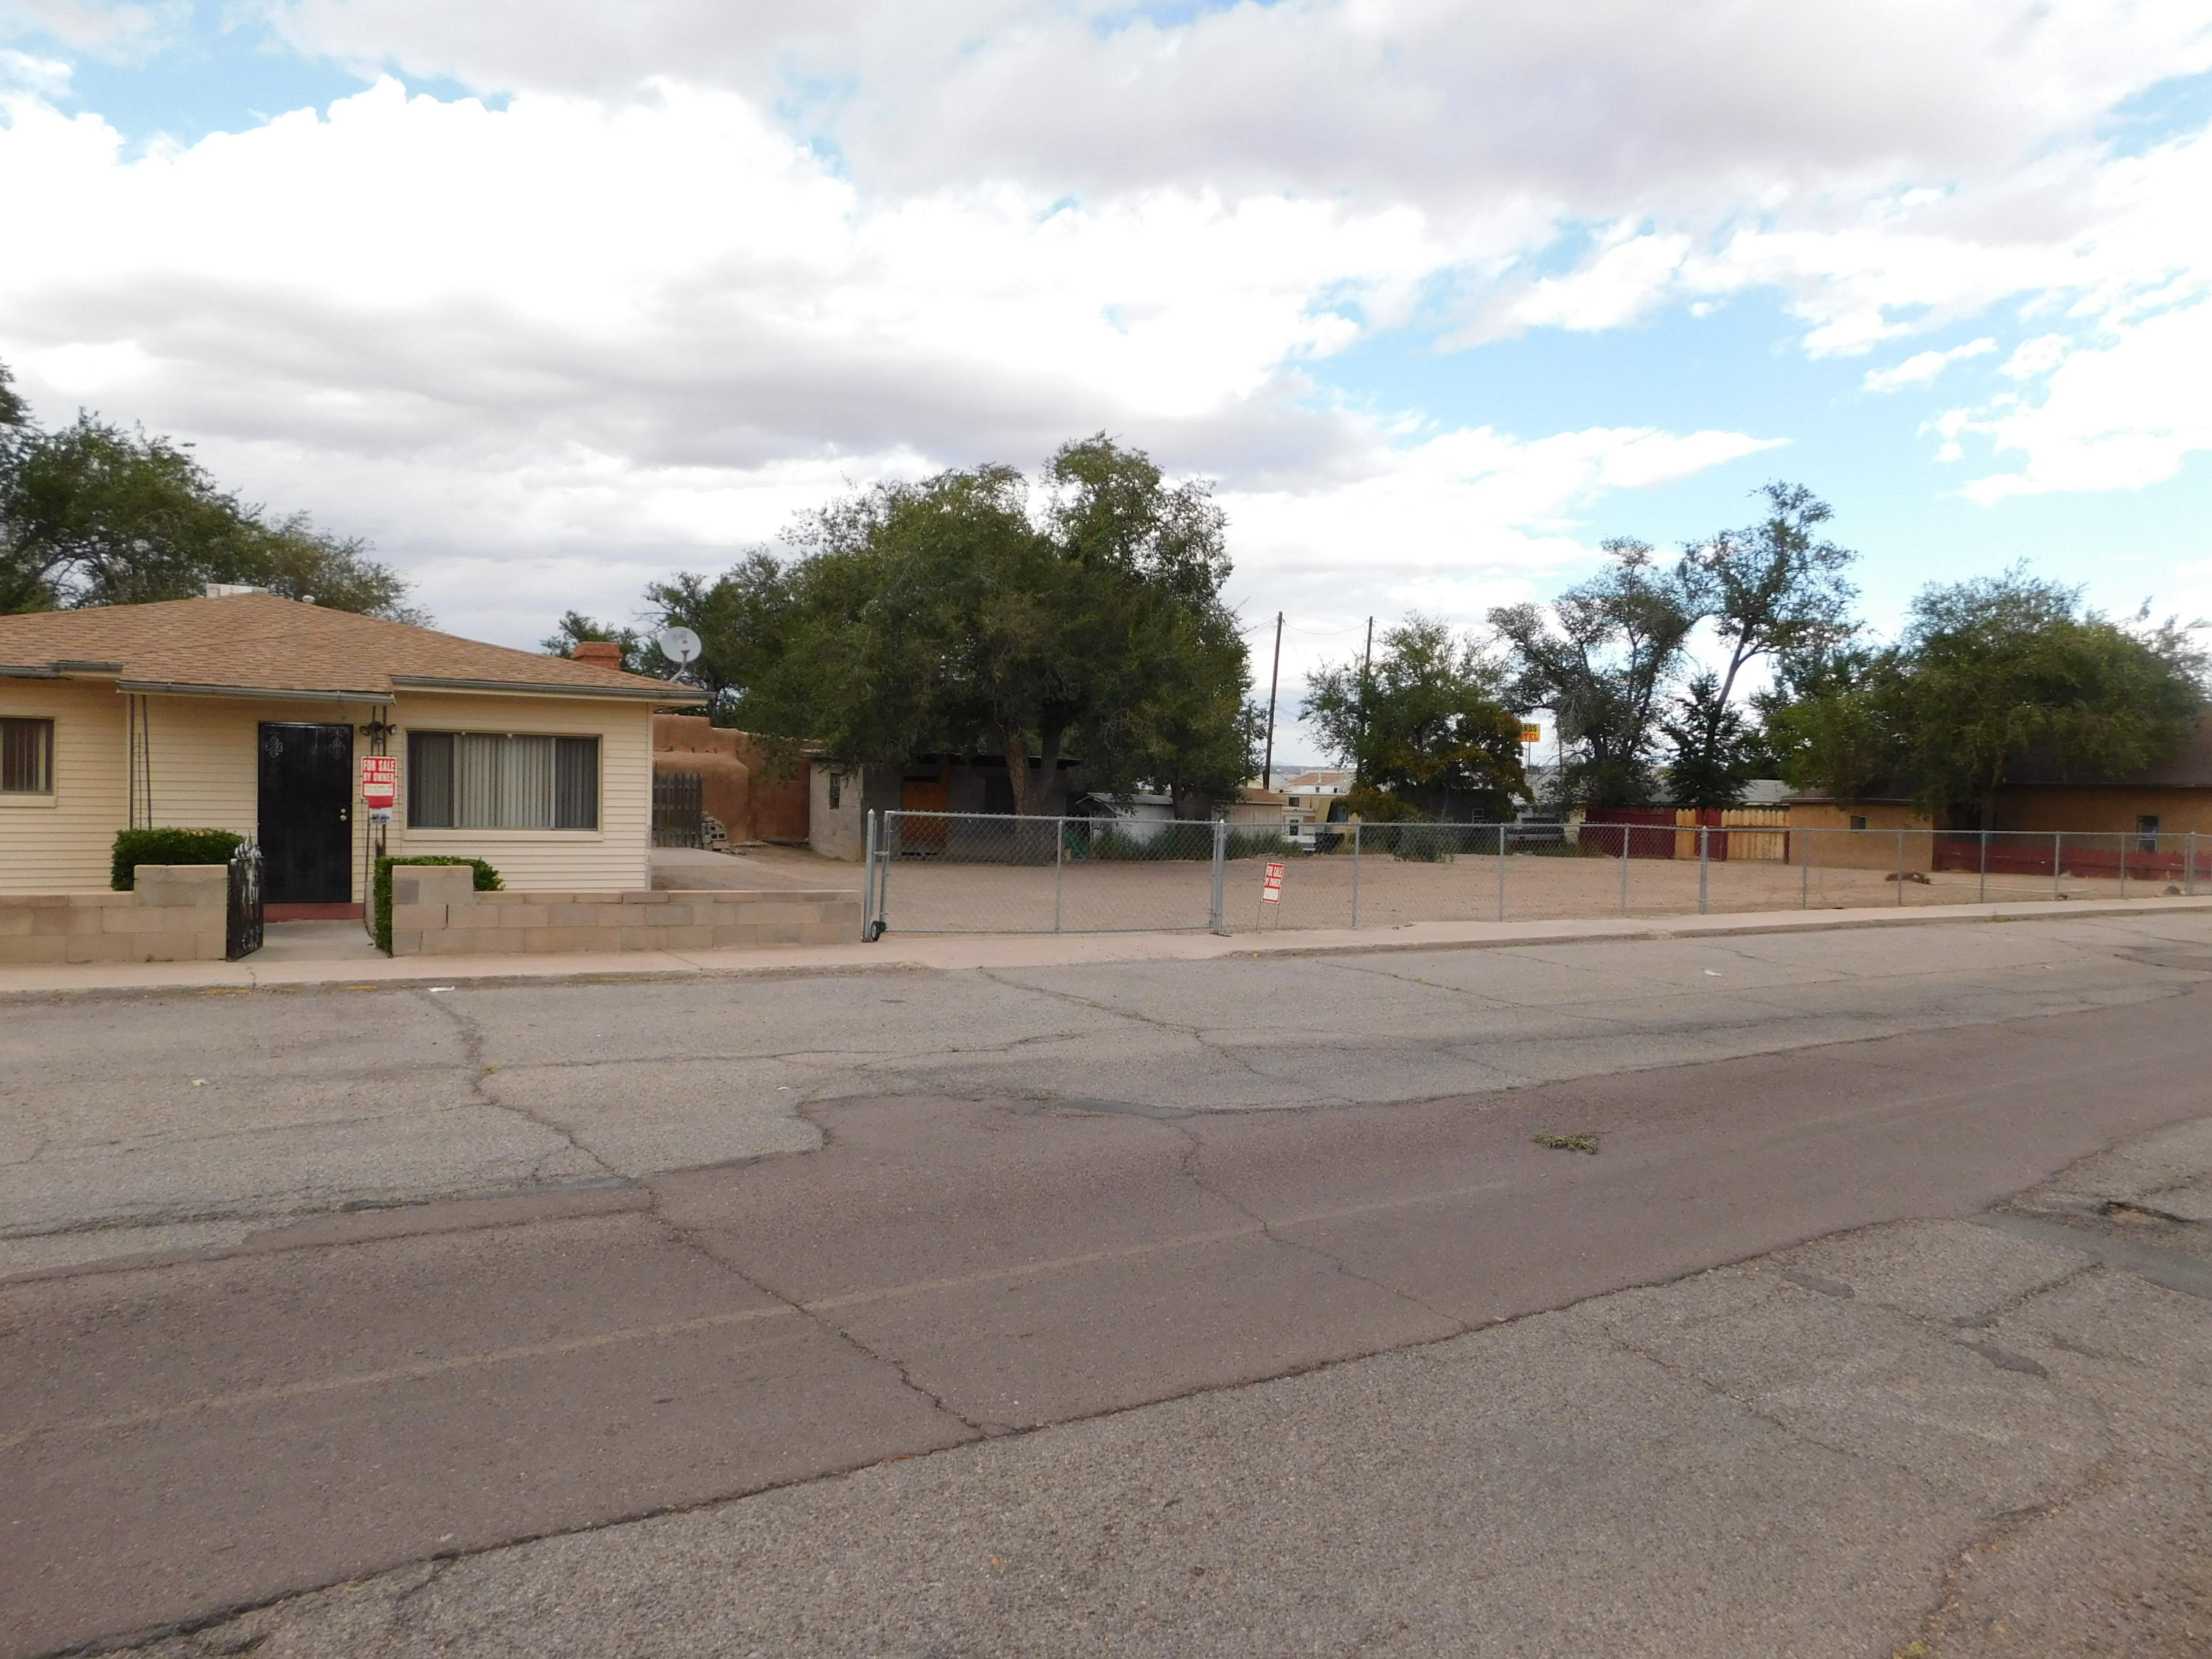 Great location close to Socorro's Historic Plaza.  2 bedroom 1 bath on 0.36 AC.  fully fenced lot with city utilities.  The possibilities are endless for this home or business property.  Call for you personal showing today